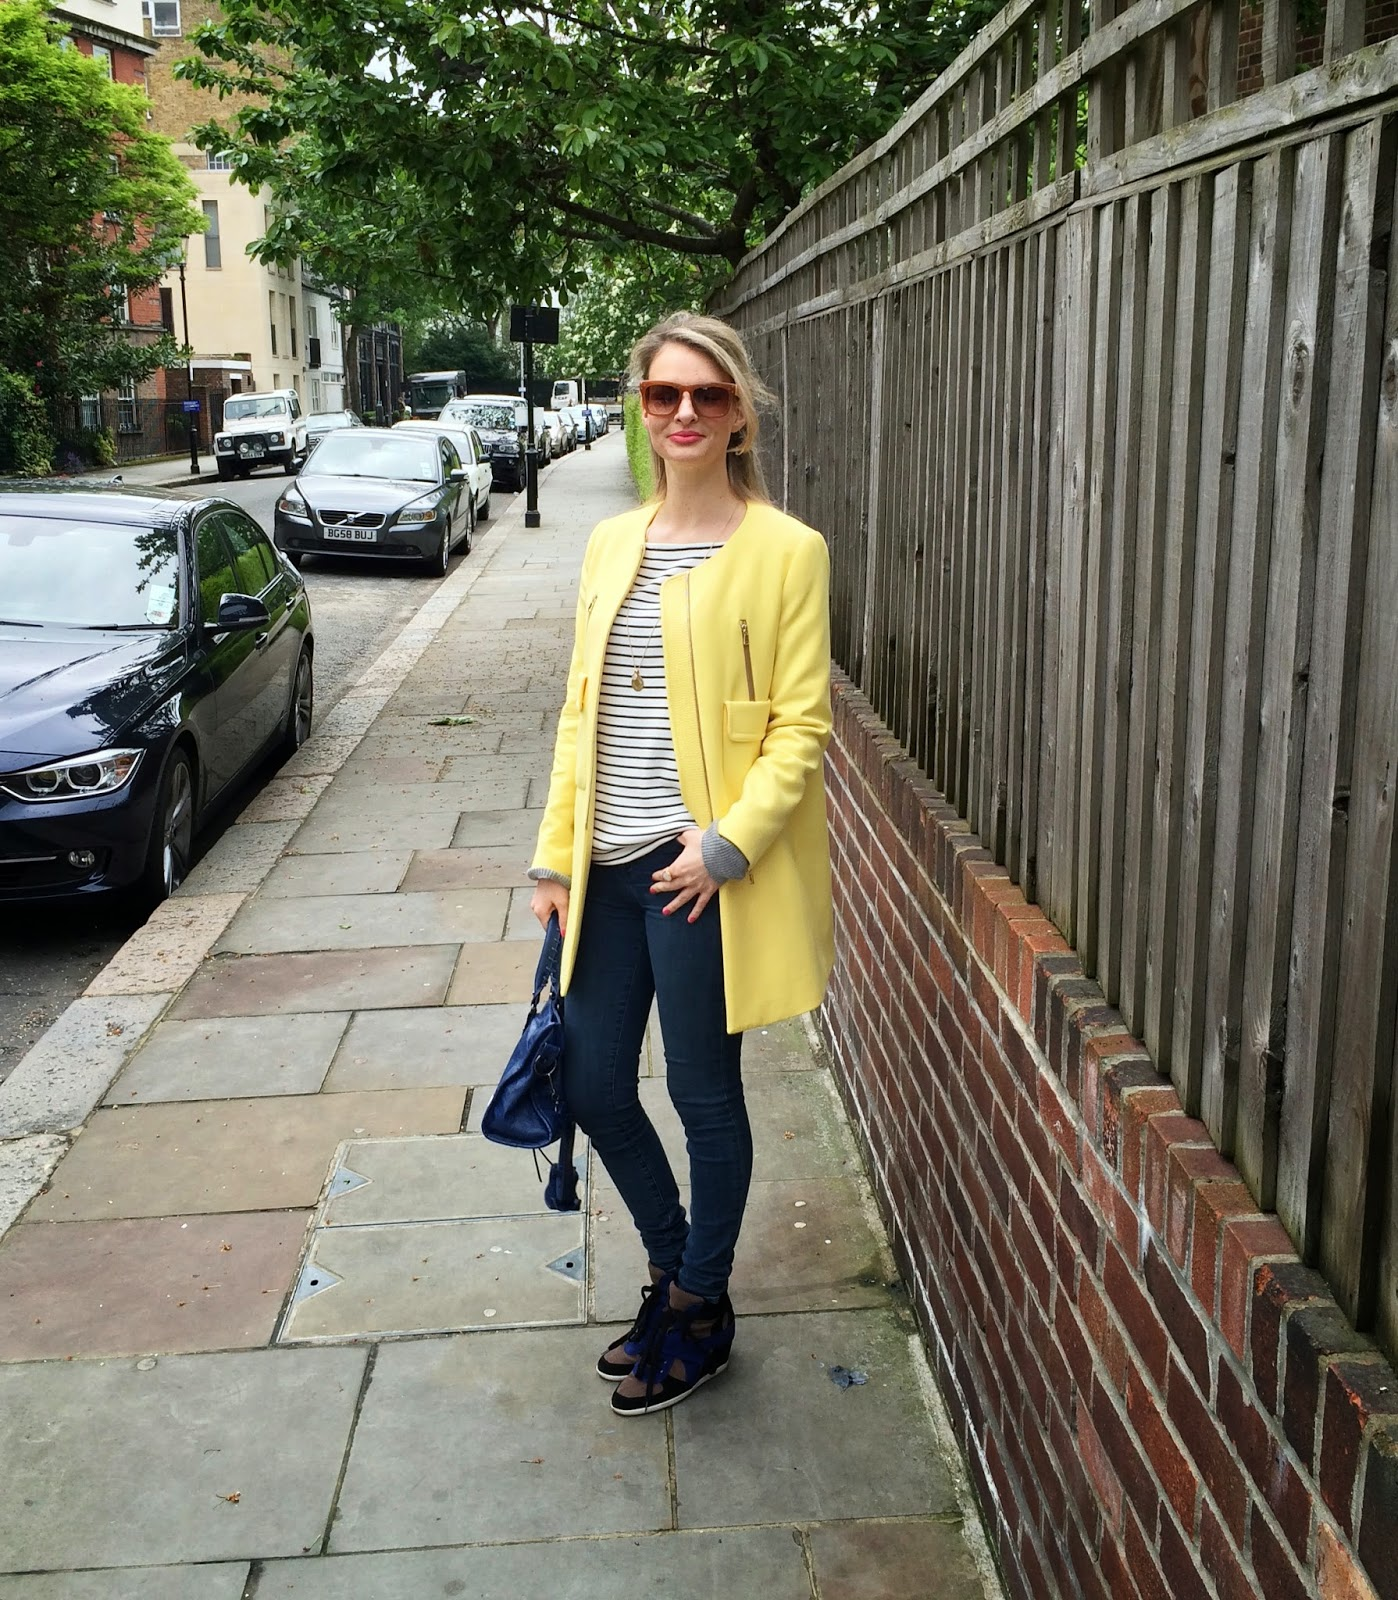 Zara, lookbook, zara coat, zara yellow coat, zara top, zara striped top, j brand, j brand jeans, wedge trainers, ash, ash footwear, ash wedge trainers, zara sunglasses, nude sunglasses, celine sunglasses, chrissabella, fashion blogger, streetstyle, german fashion blogger, modeblogger